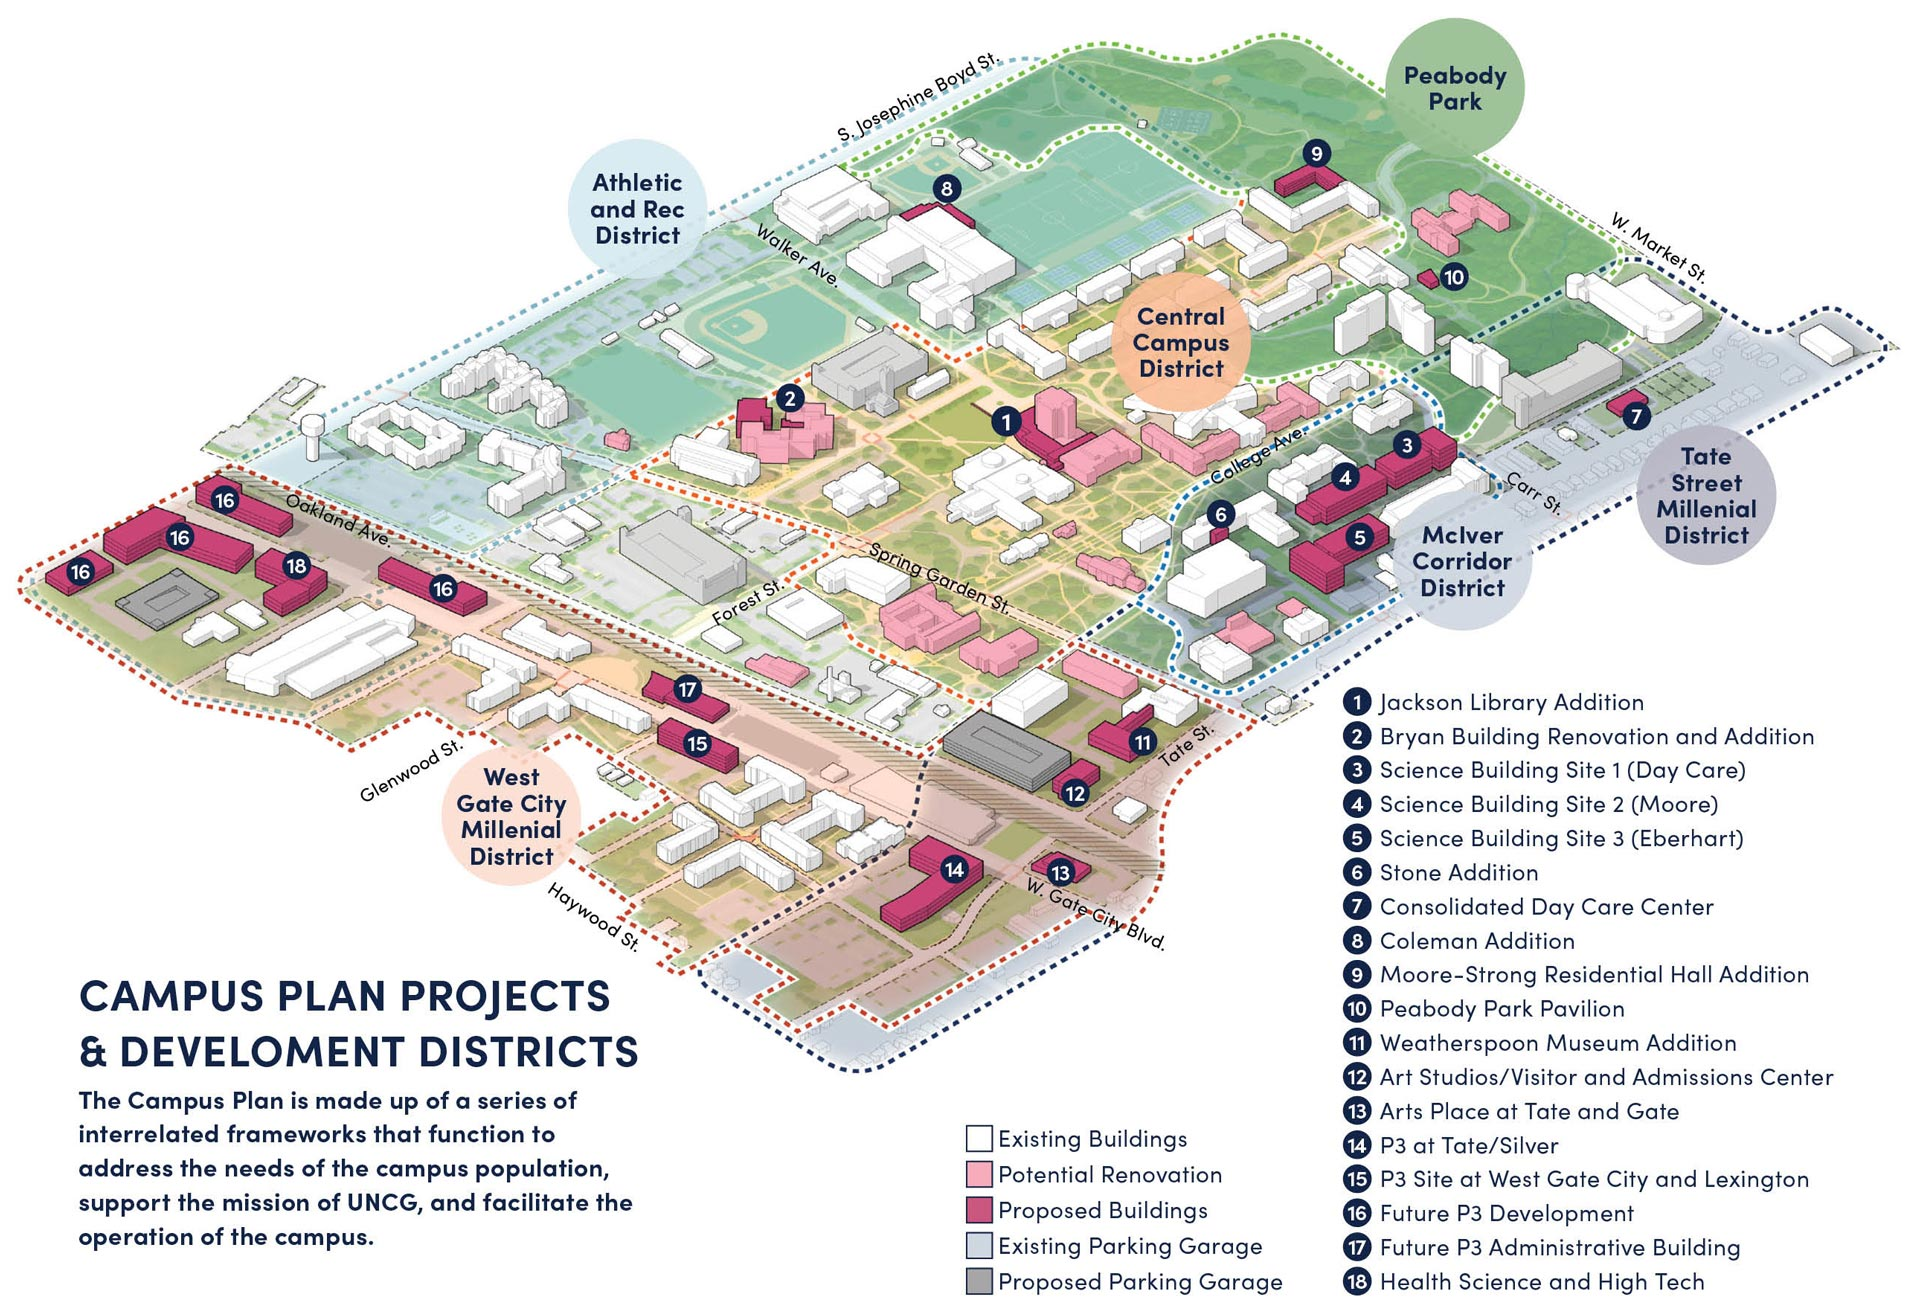 Campus plan projects and development districts